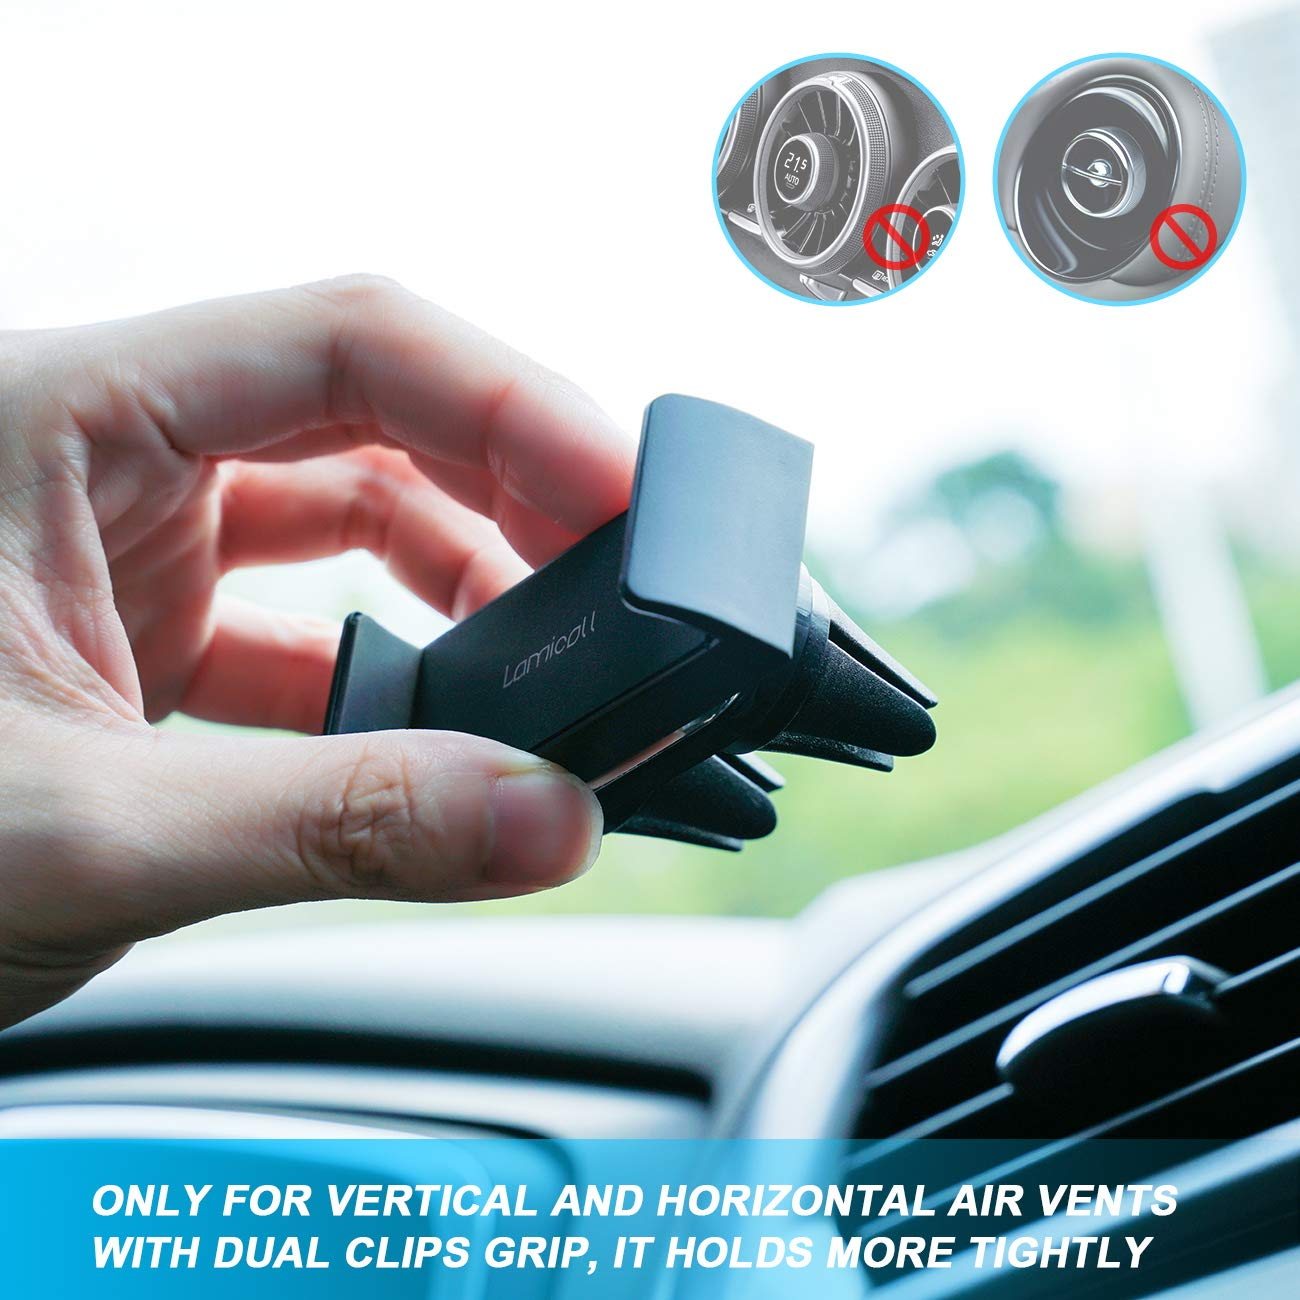 Car Phone Mount, Lamicall Car Vent Holder : Universal Stand Cradle Holder Compatible with Phone Xs Max XR 8 X 8P 7 7P 6S 6P 6, Samsung Galaxy S5 S6 S8 S9 S8+ S9+, Google, LG, Huawei, Other Smartphone by Lamicall (Image #6)